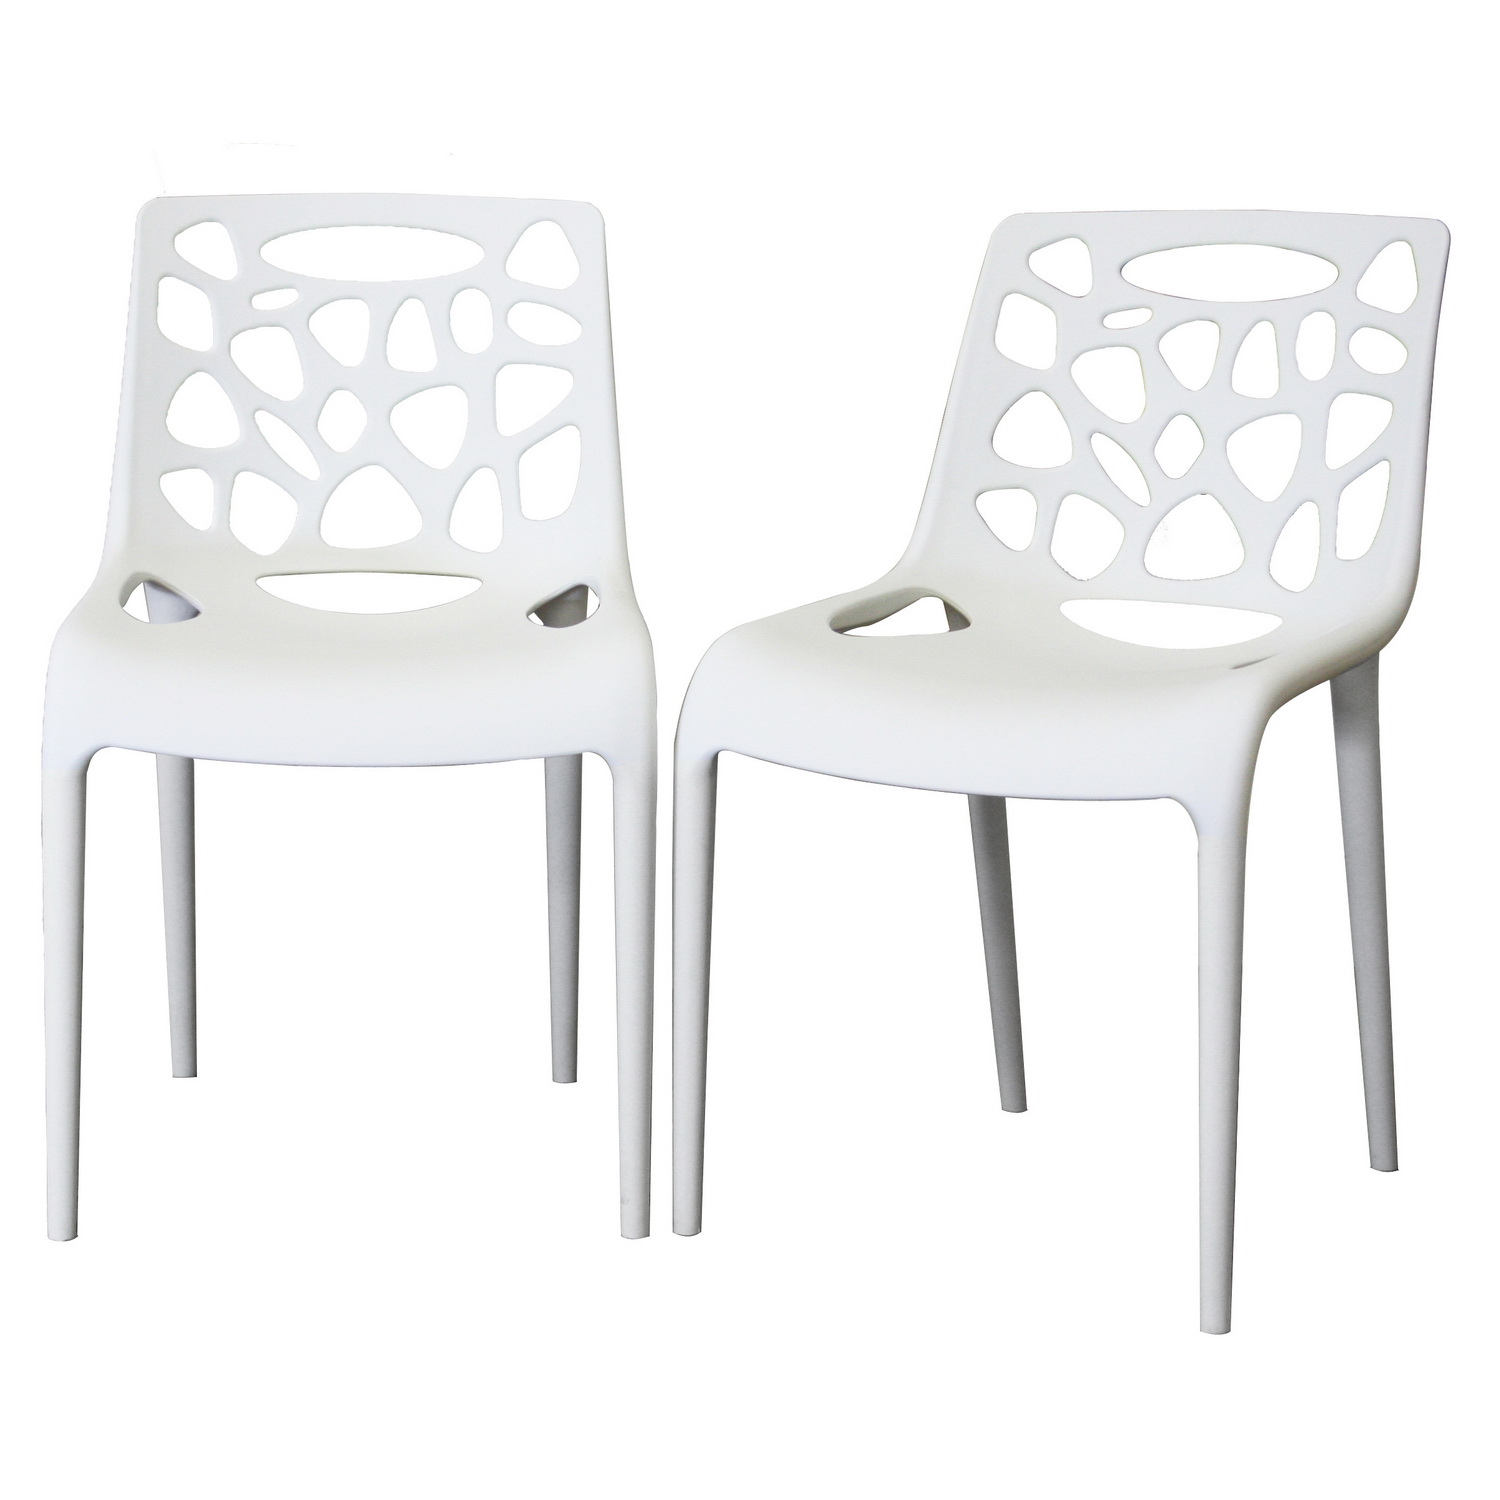 MODERN PLASTIC DINING CHAIRS  Chair Pads  Cushions